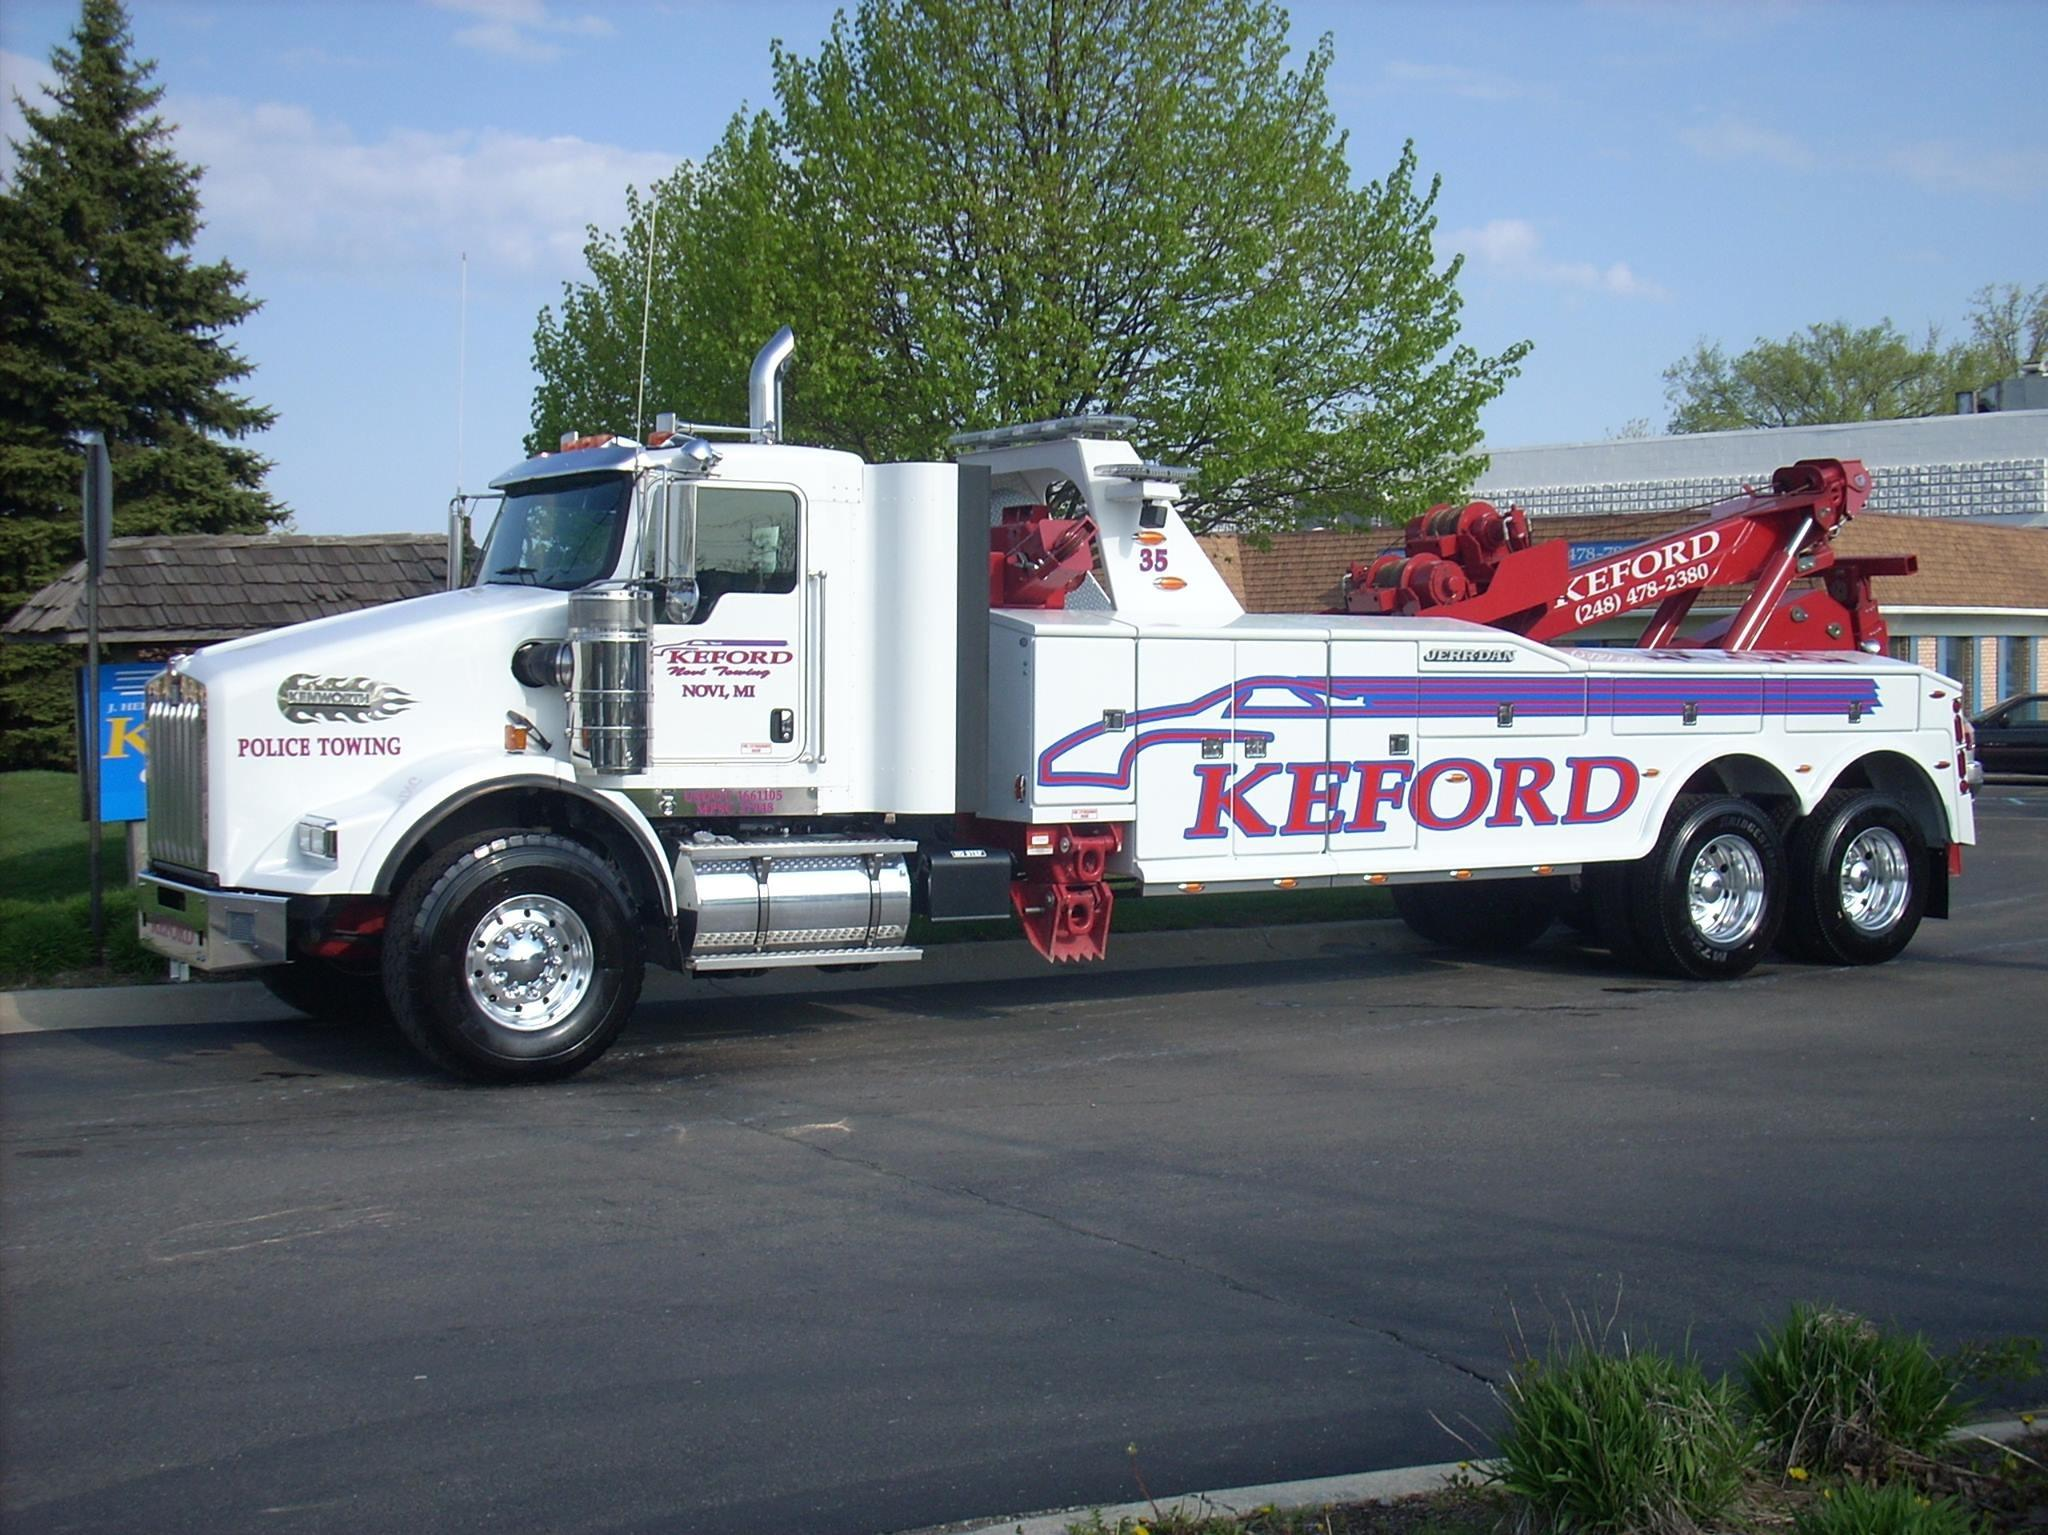 Keford Collision Towing In Novi Mi 48375